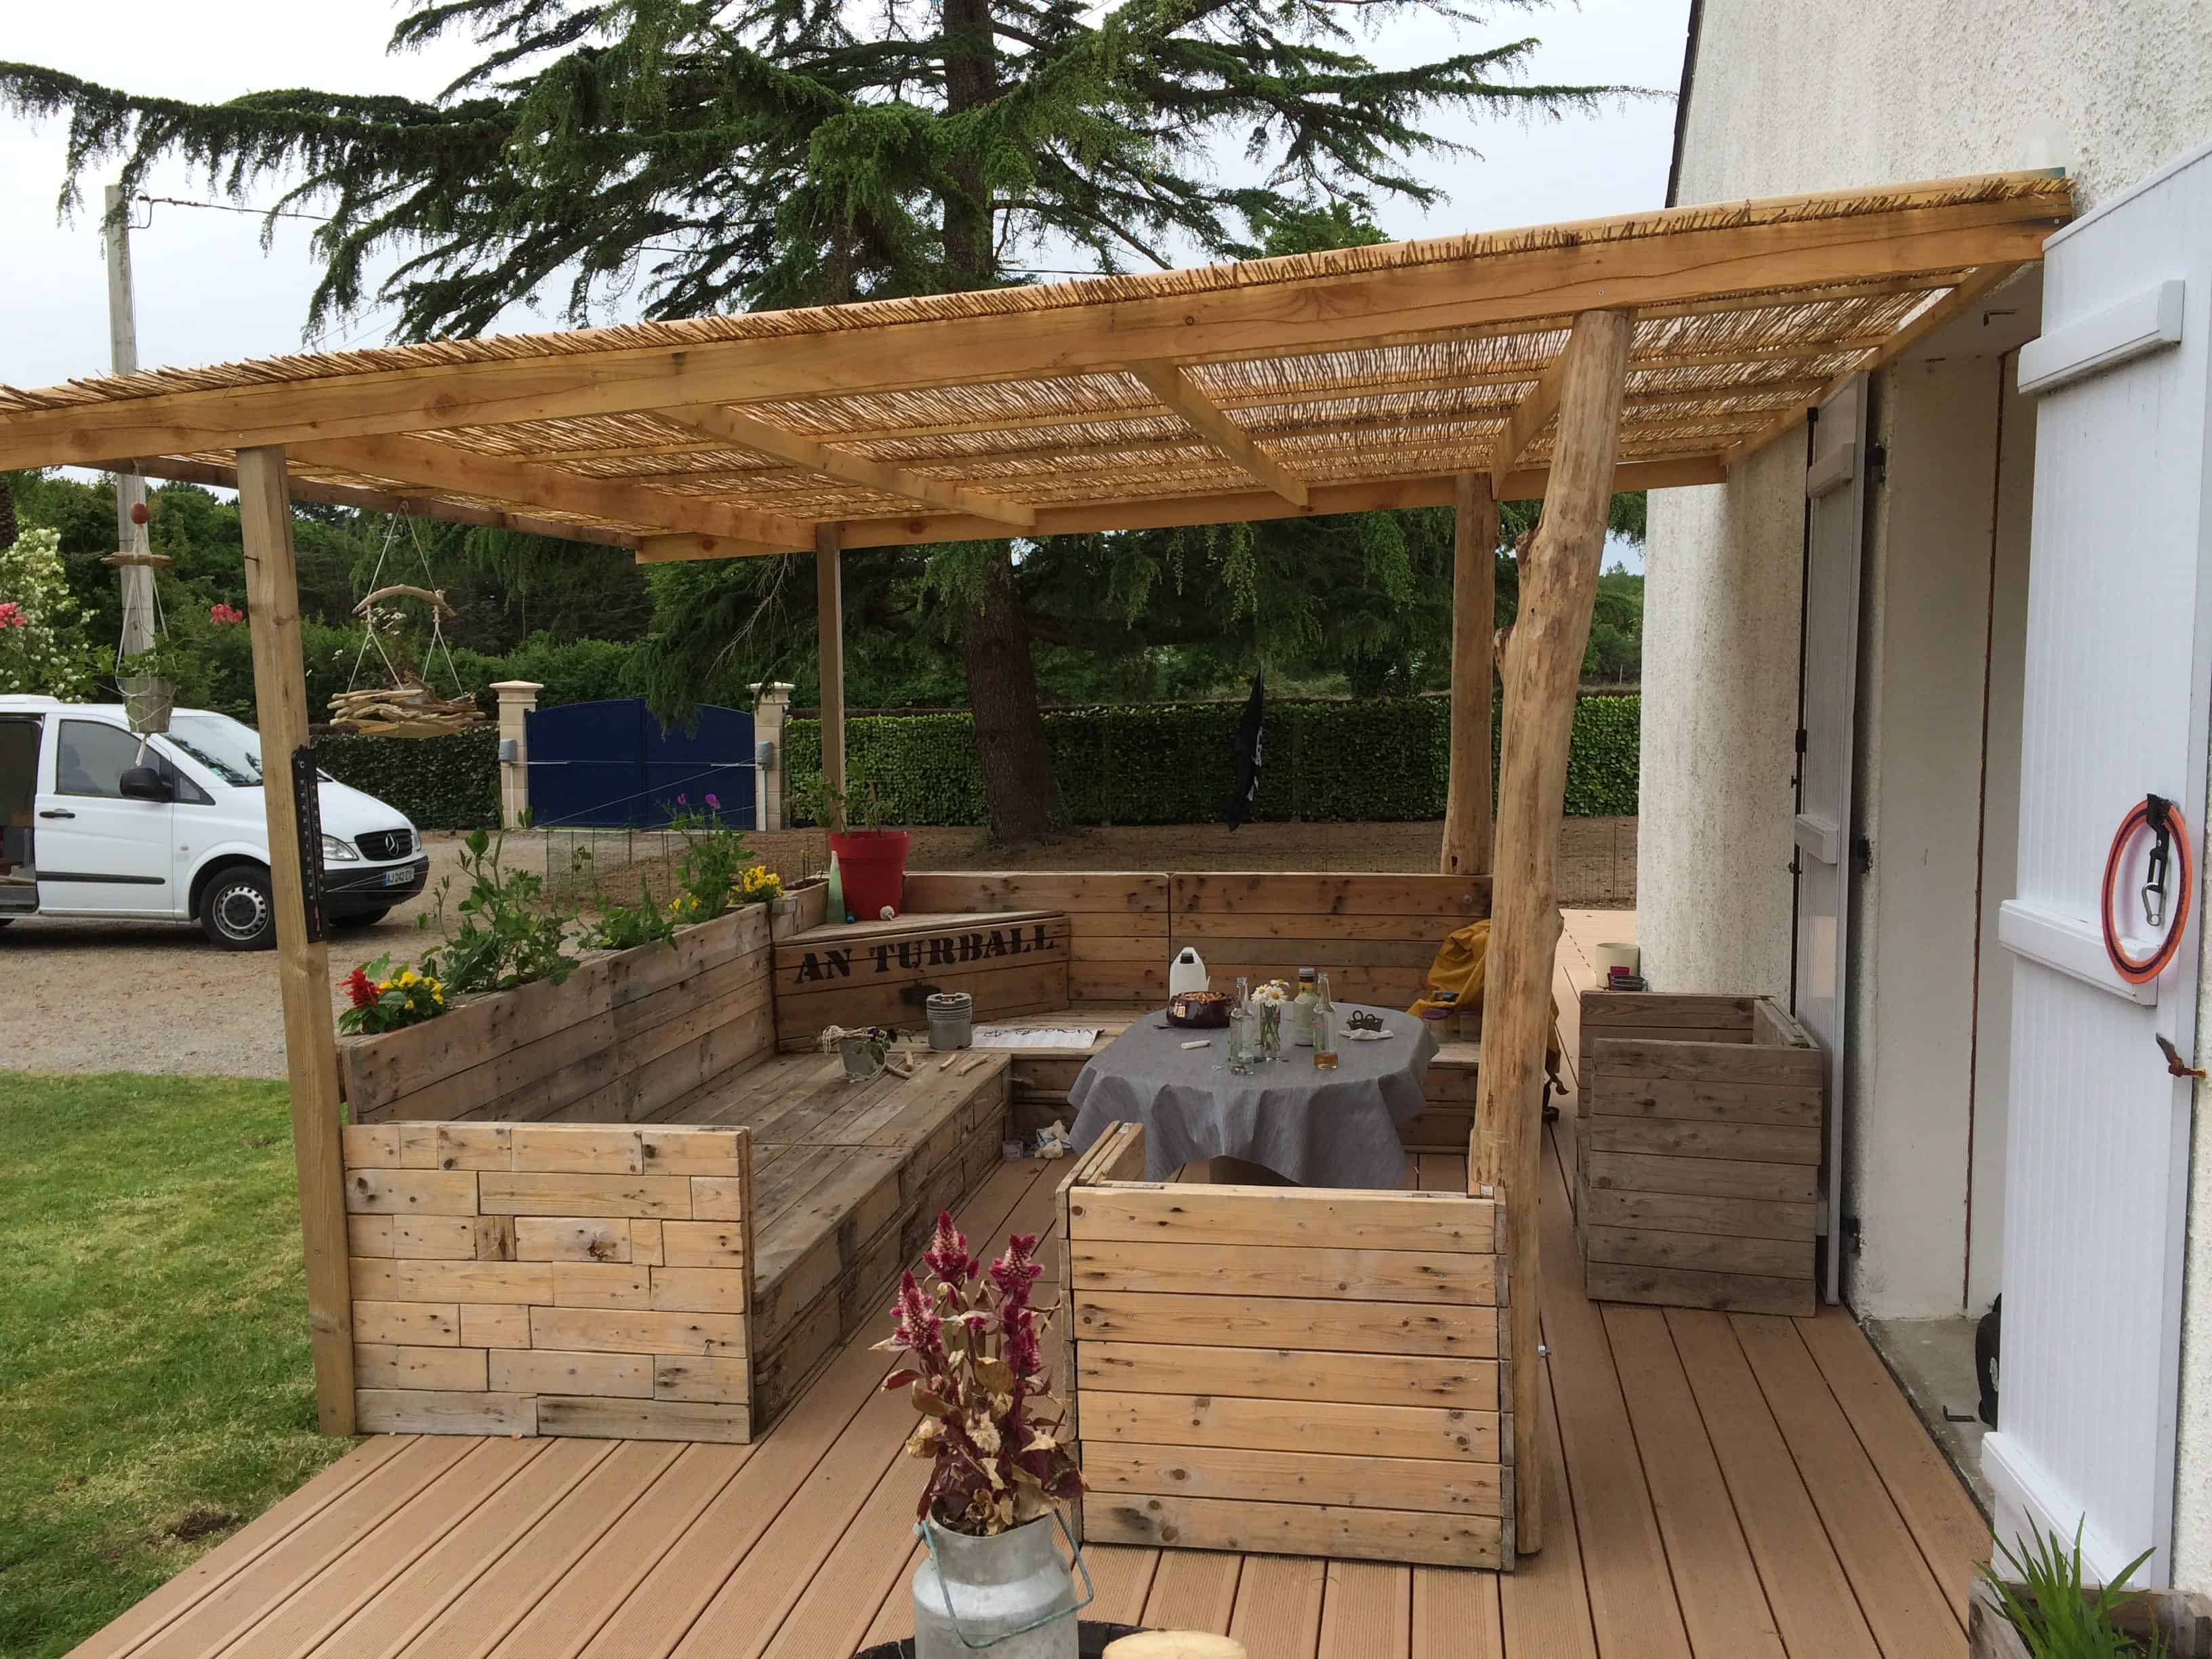 Salon de jardin 15 pallets garden set 1001 pallets for Palette table de jardin